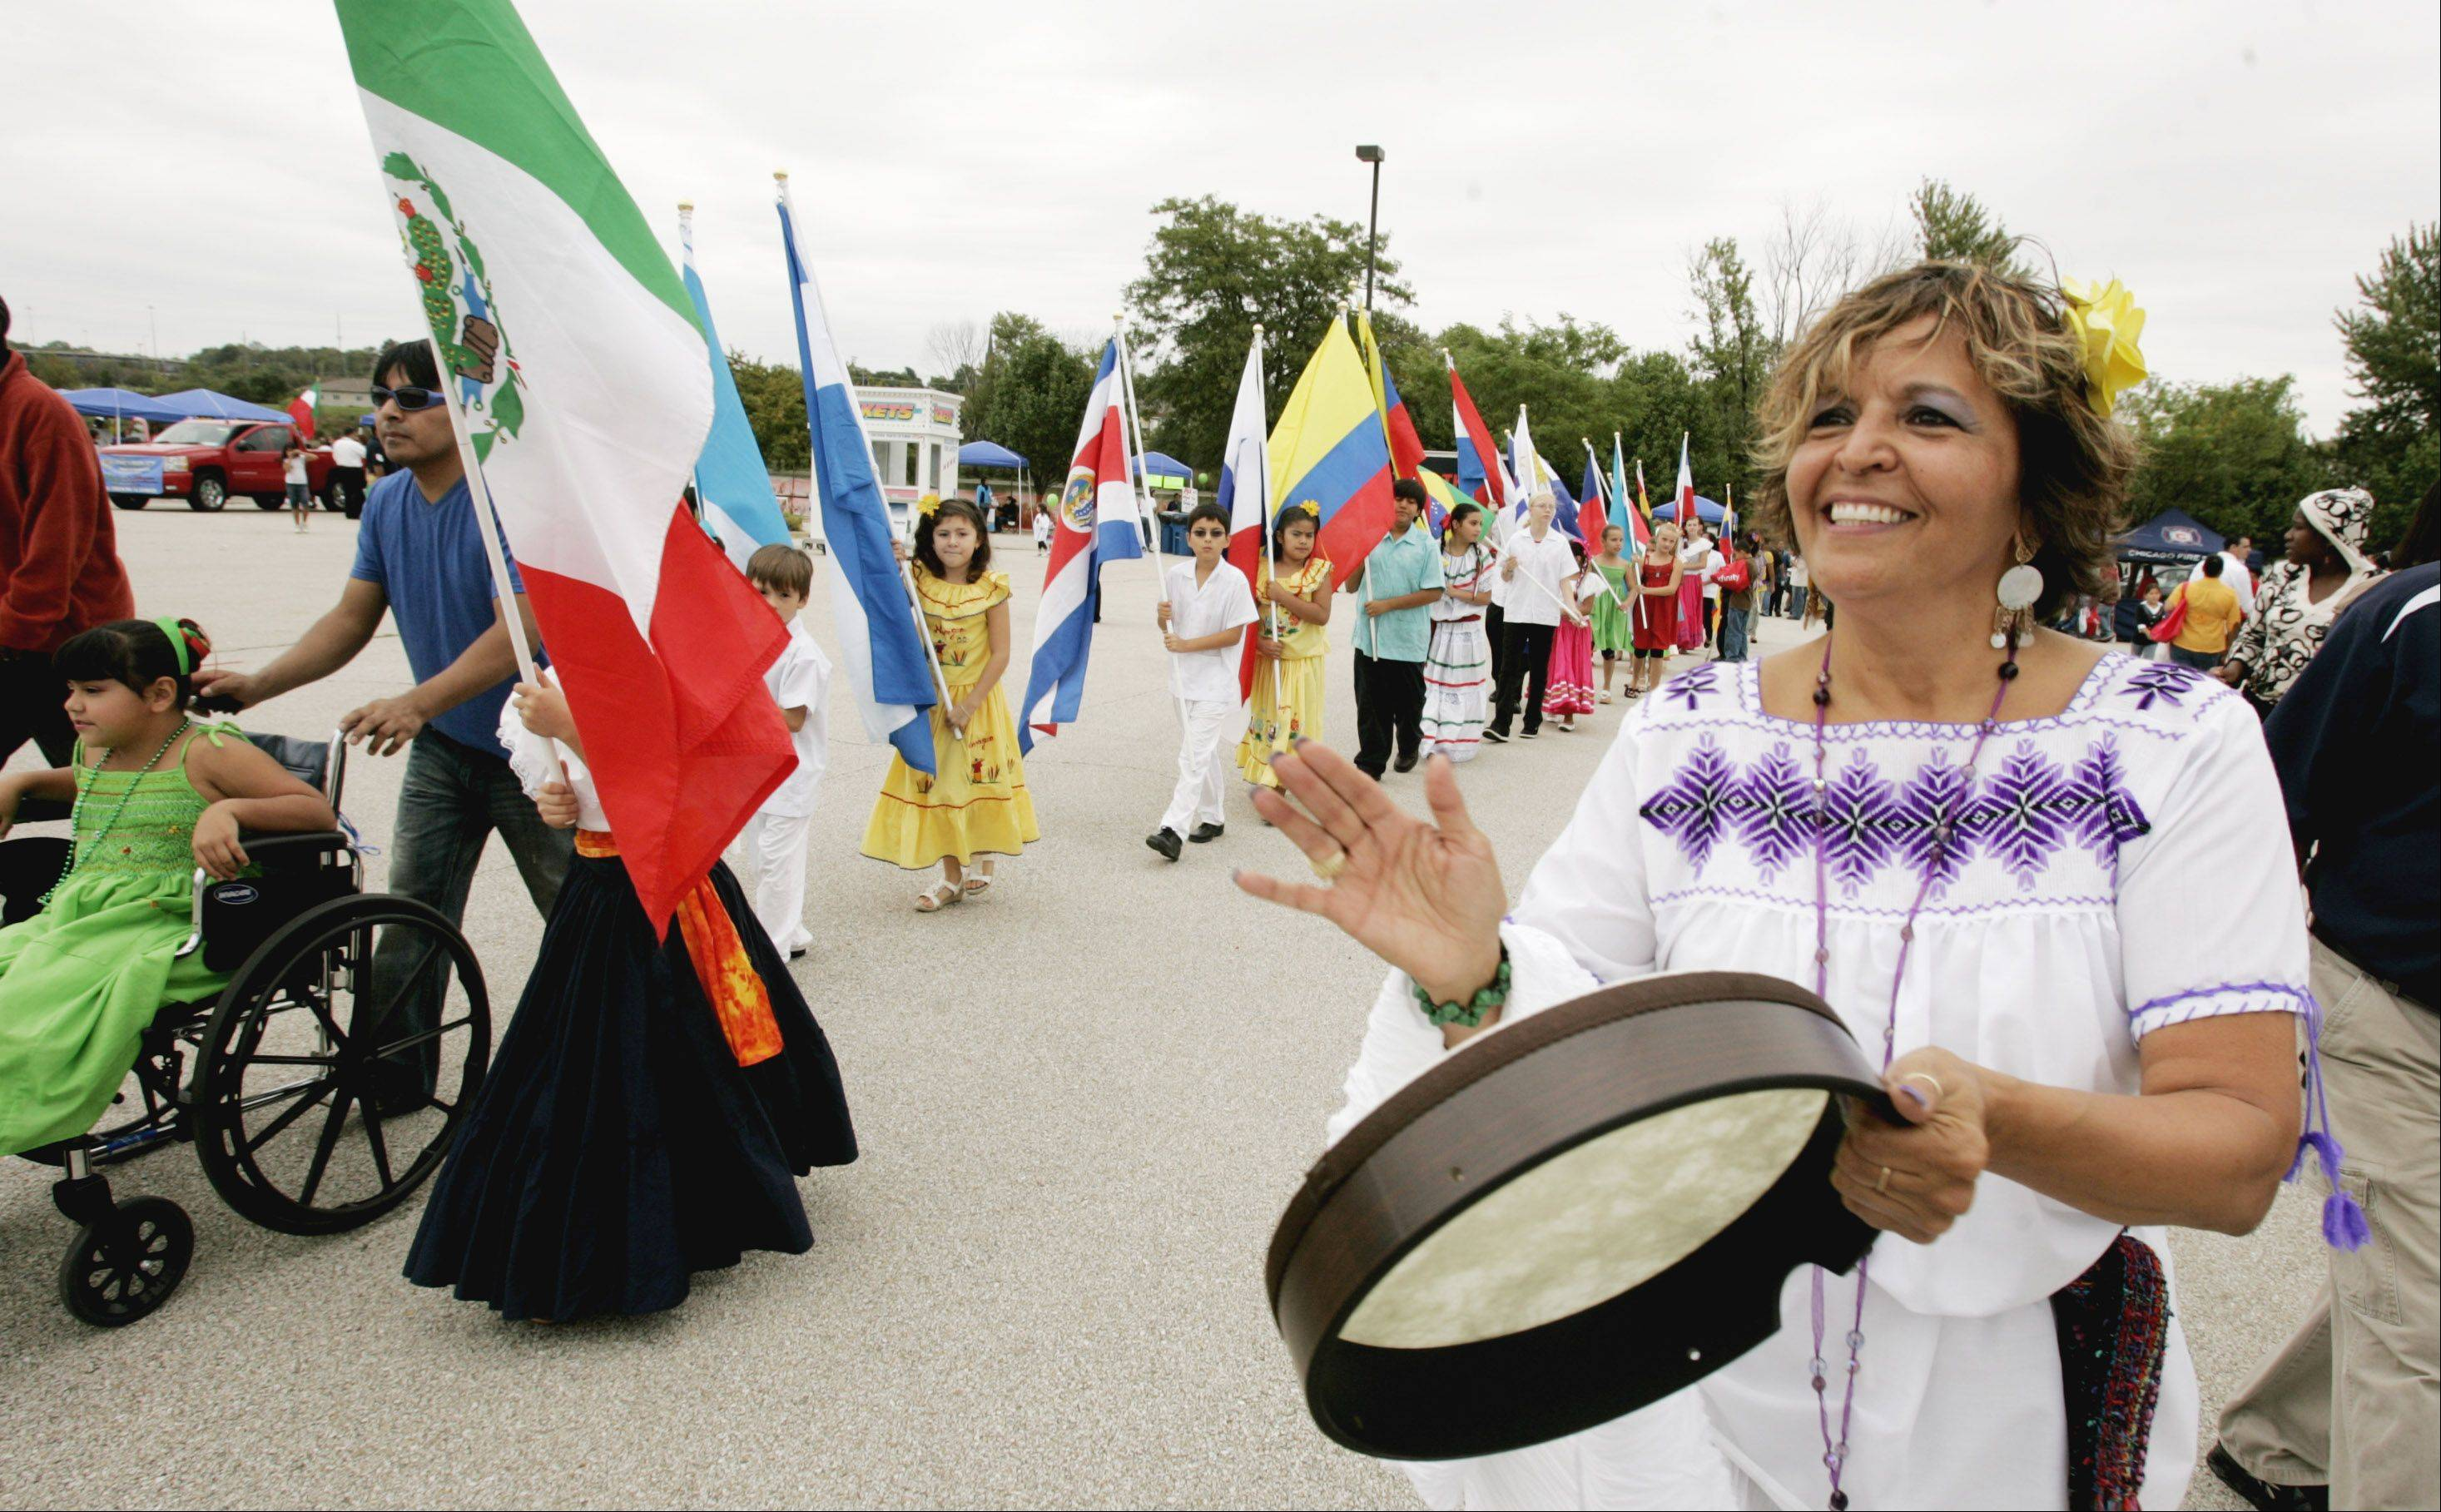 Delia Nila Basile sets the beat for the Parade of Nations at the first Fiestas Patrias in Aurora in 2010. This year's festival will take place Sept. 14 to 16 at North River Street Park with the Parade of Nations at 1:30 p.m. Saturday, Sept. 15.